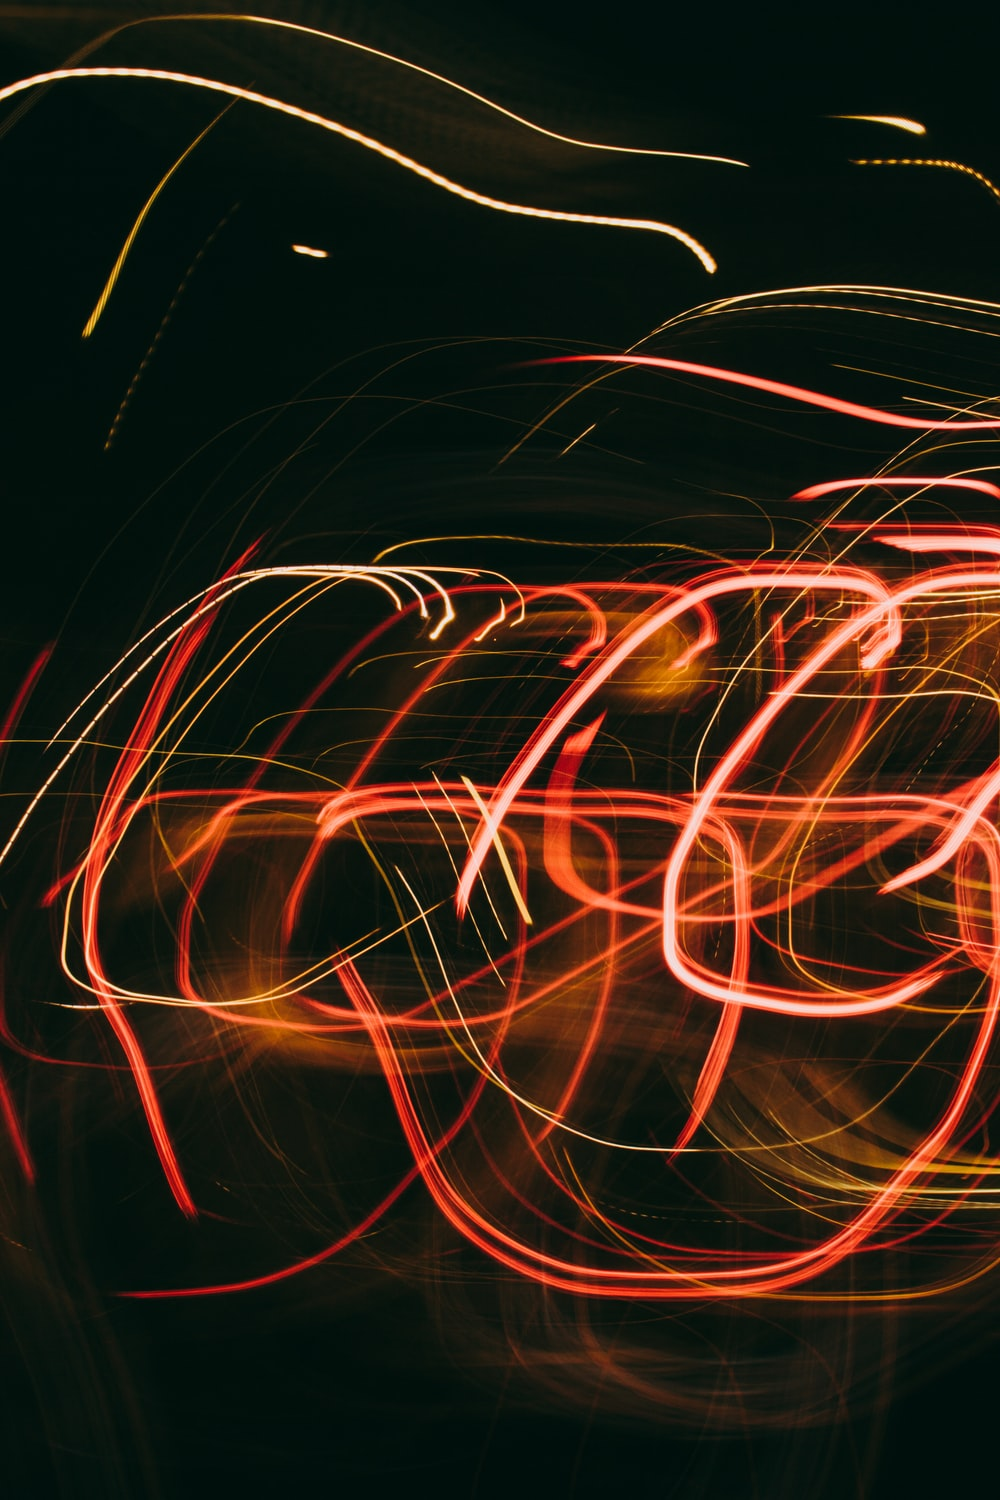 red and yellow light streaks